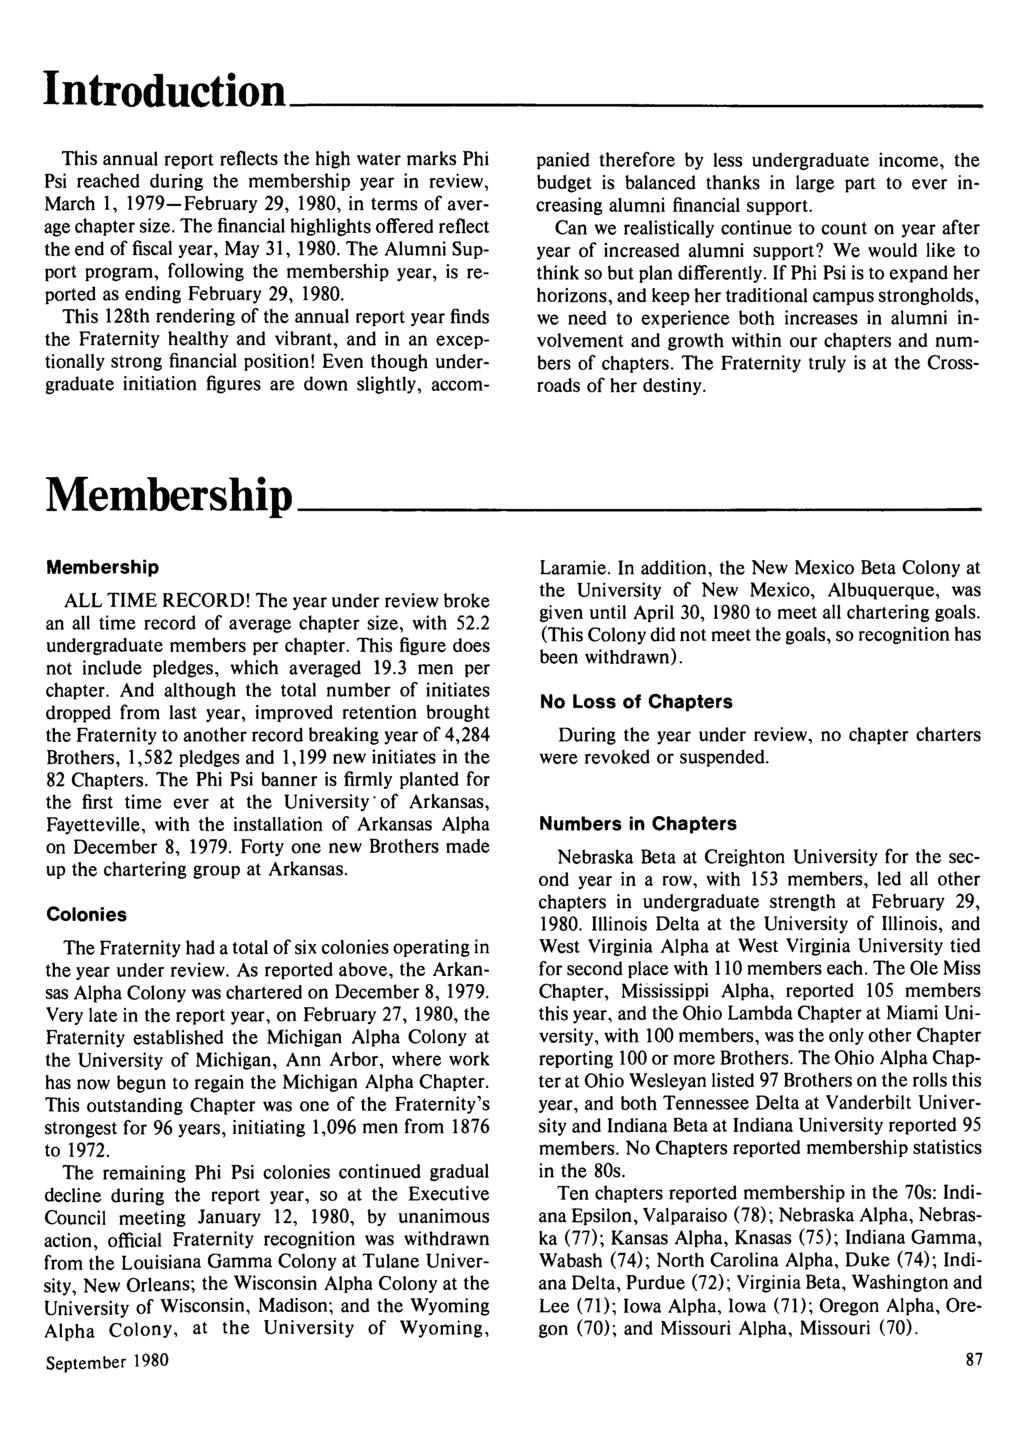 Introduction This annual report reflects the high water marks Phi Psi reached during the membership year in review, March 1, 1979 February 29, 1980, in terms of average chapter size.